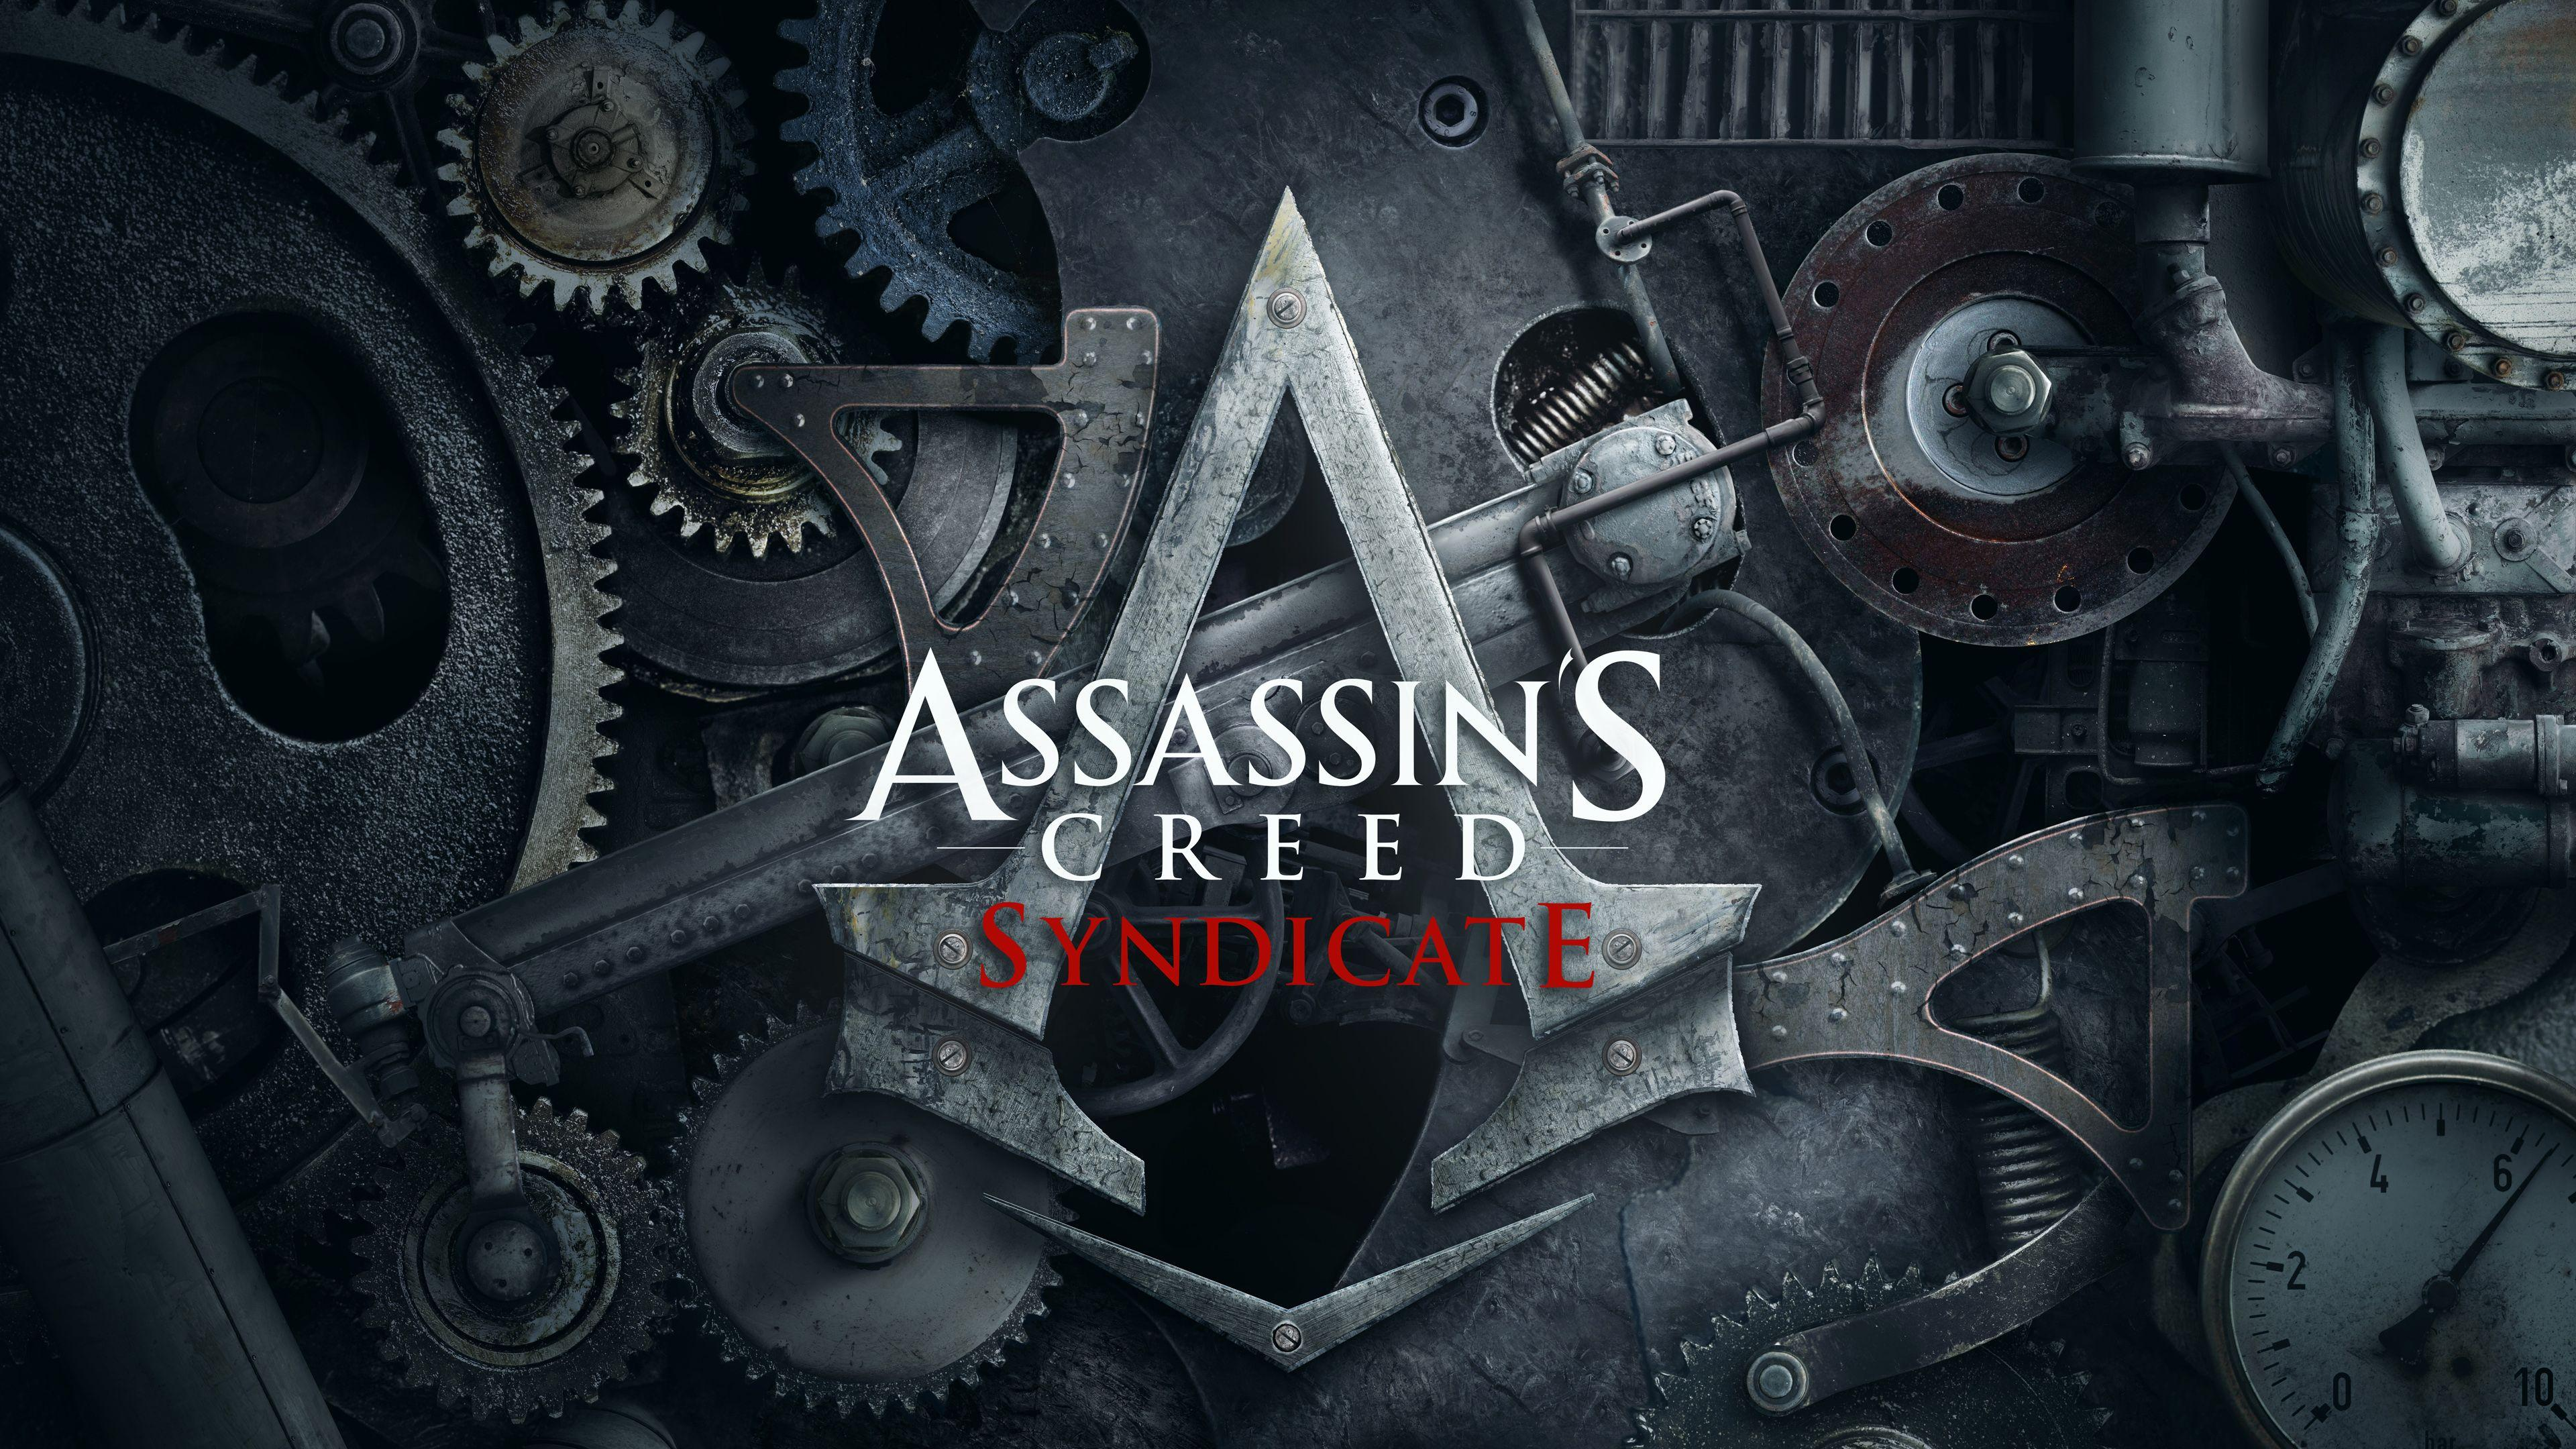 1159 Assassin's Creed HD Wallpapers